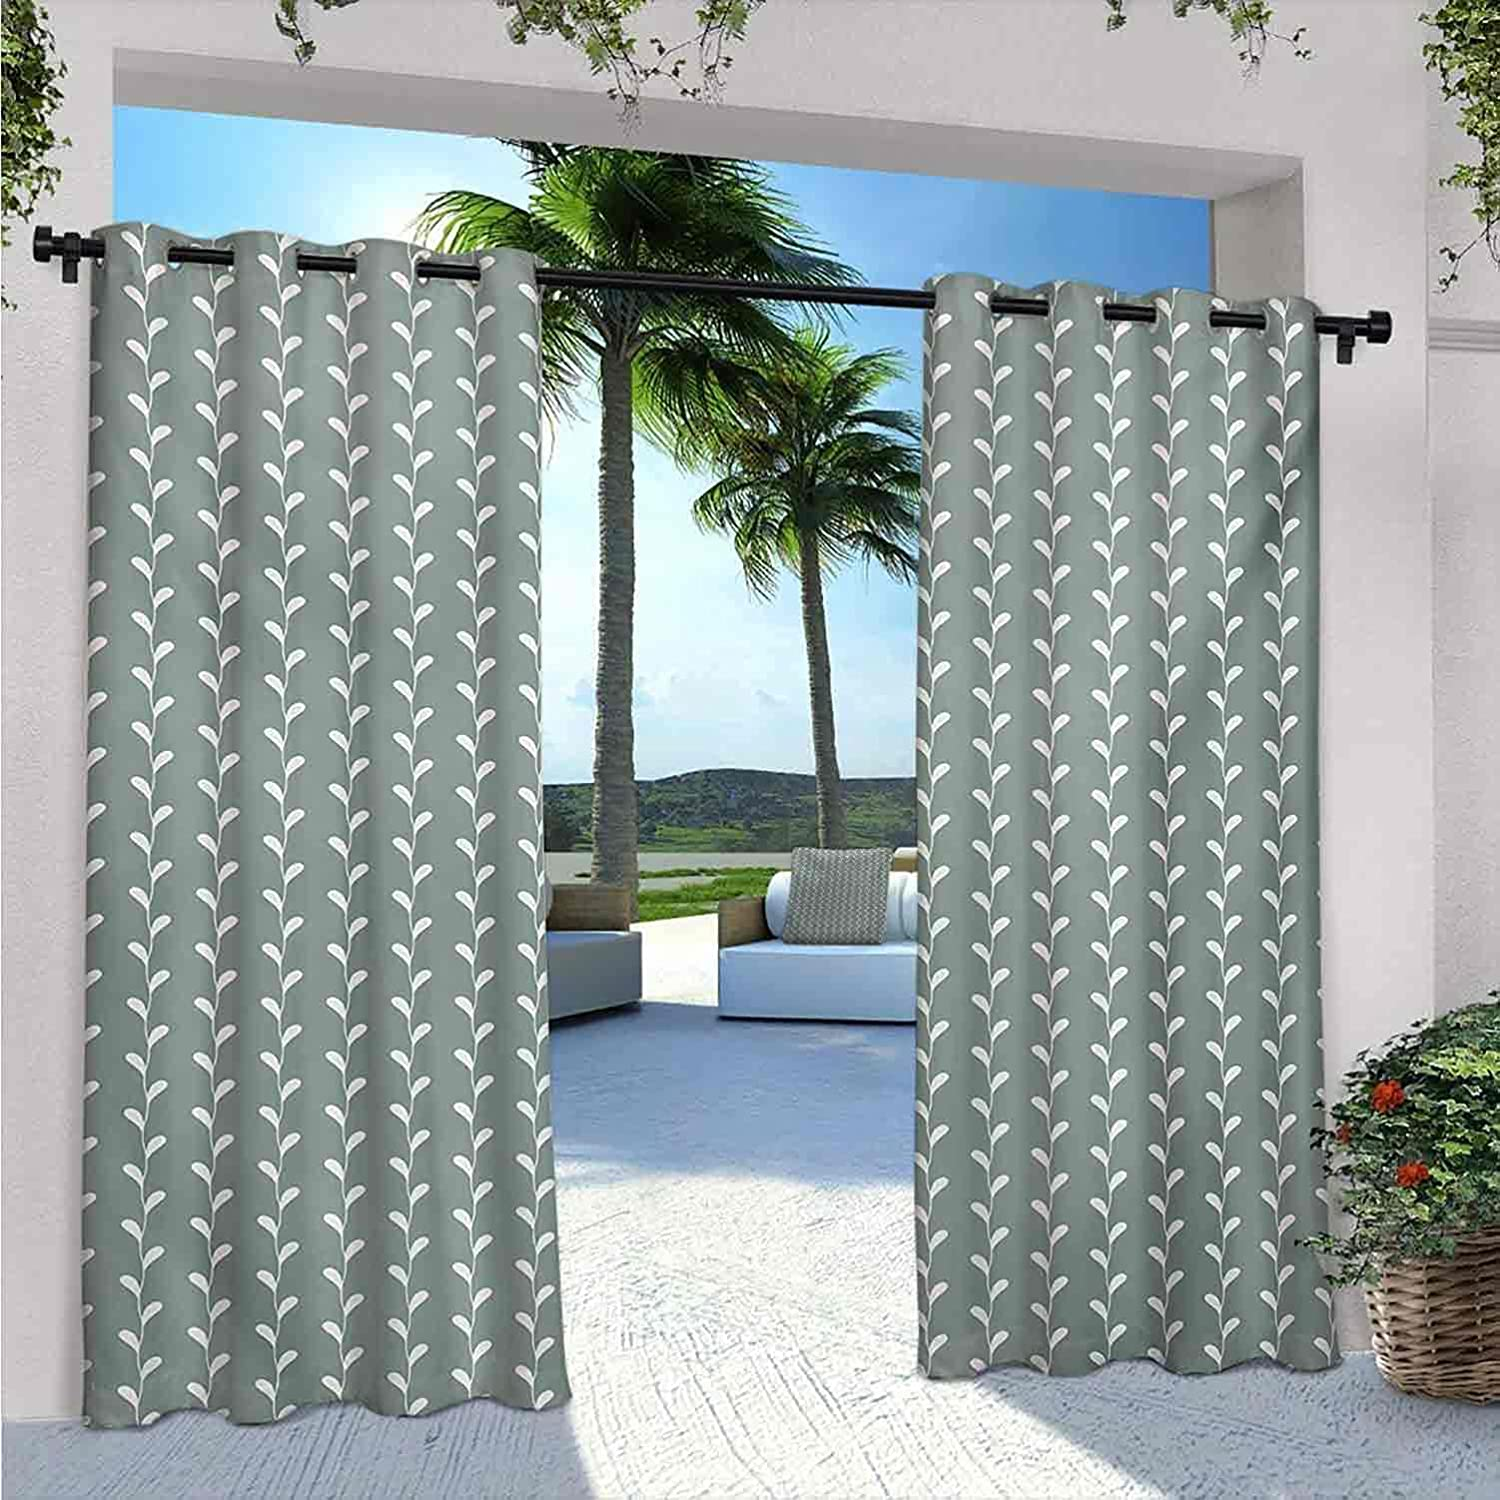 Abstract Outdoor Patio New color Direct store Curtains Vintage w Classic Wavy Branches